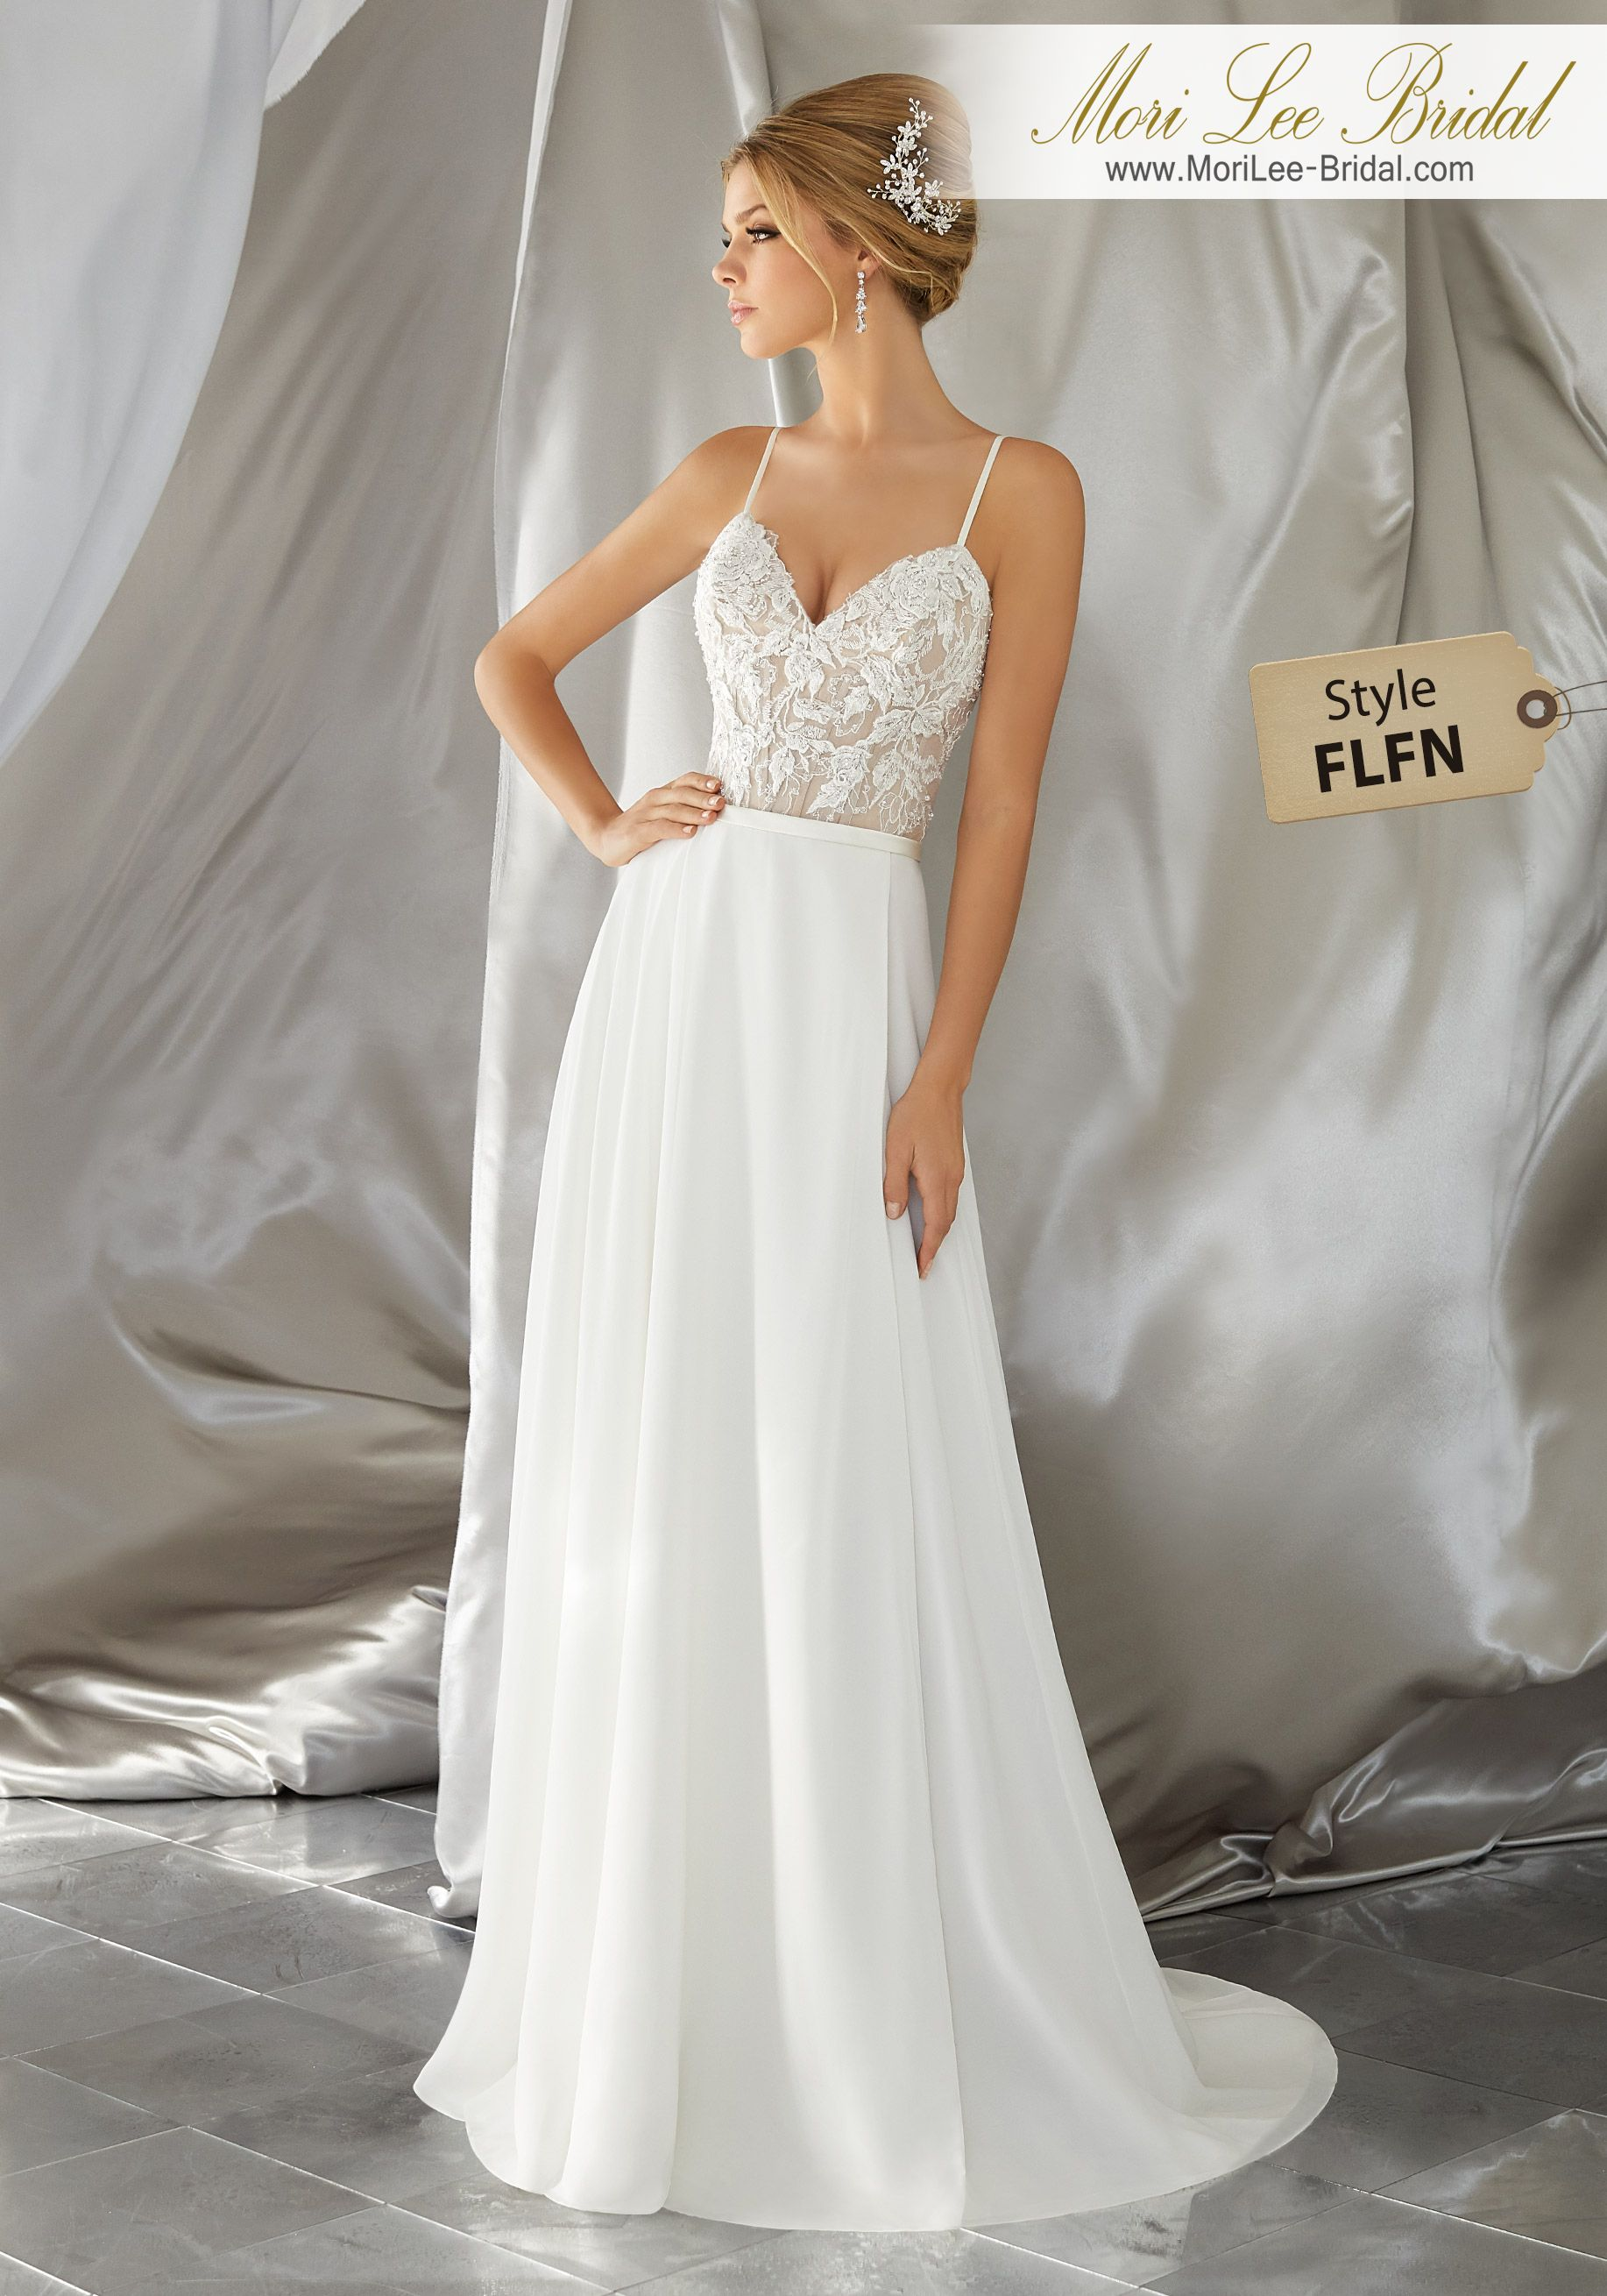 Mori Lee Wedding Dress. Find Mori Lee and More at Aria Bridal in San ...